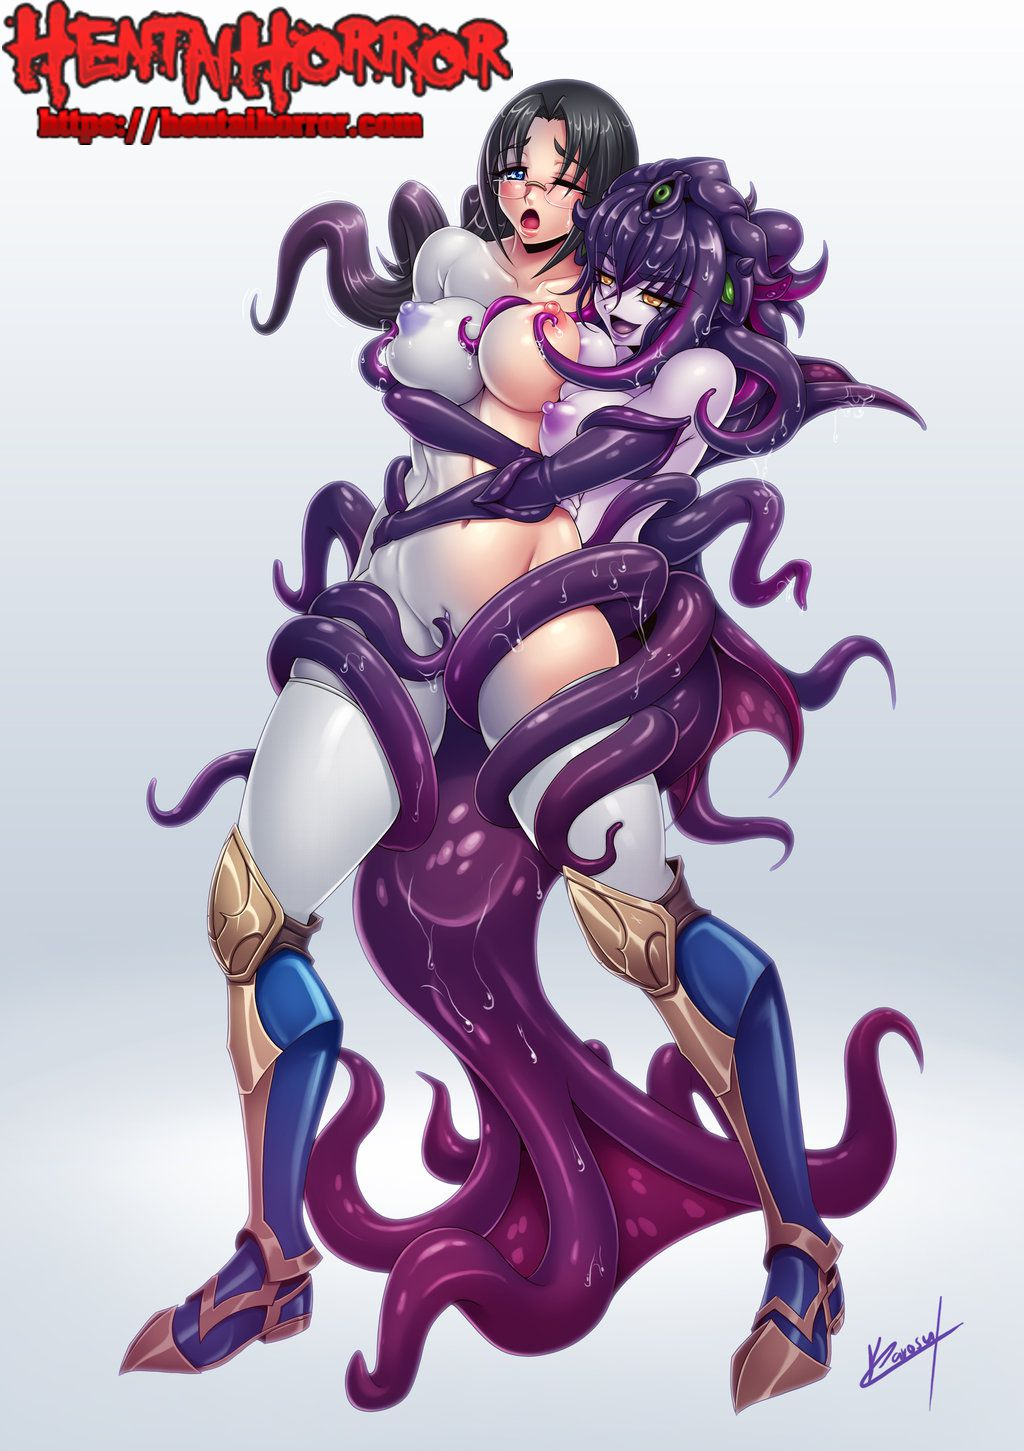 Anim Porn Monster With Big Boobs Hot nsfw uncensored oppai yuri hentai art of big tits asian girl